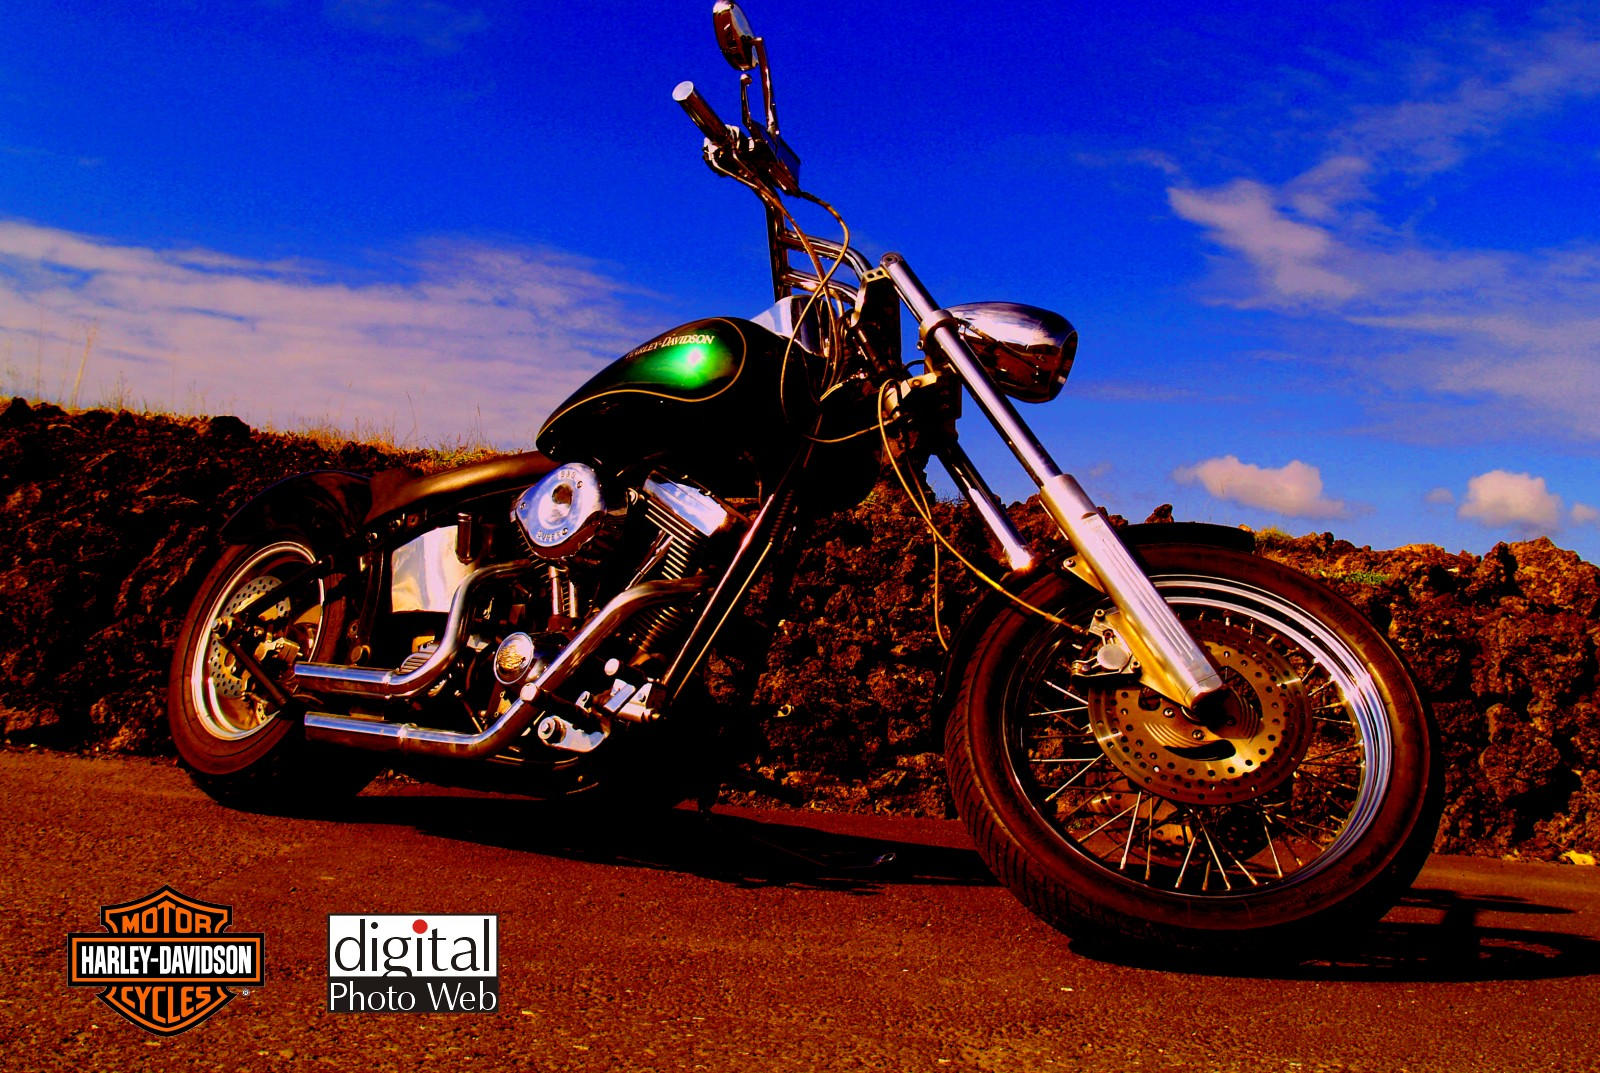 1000 Harley Davidson Wallpaper Harley Davidson Wallpaper 1600x1073